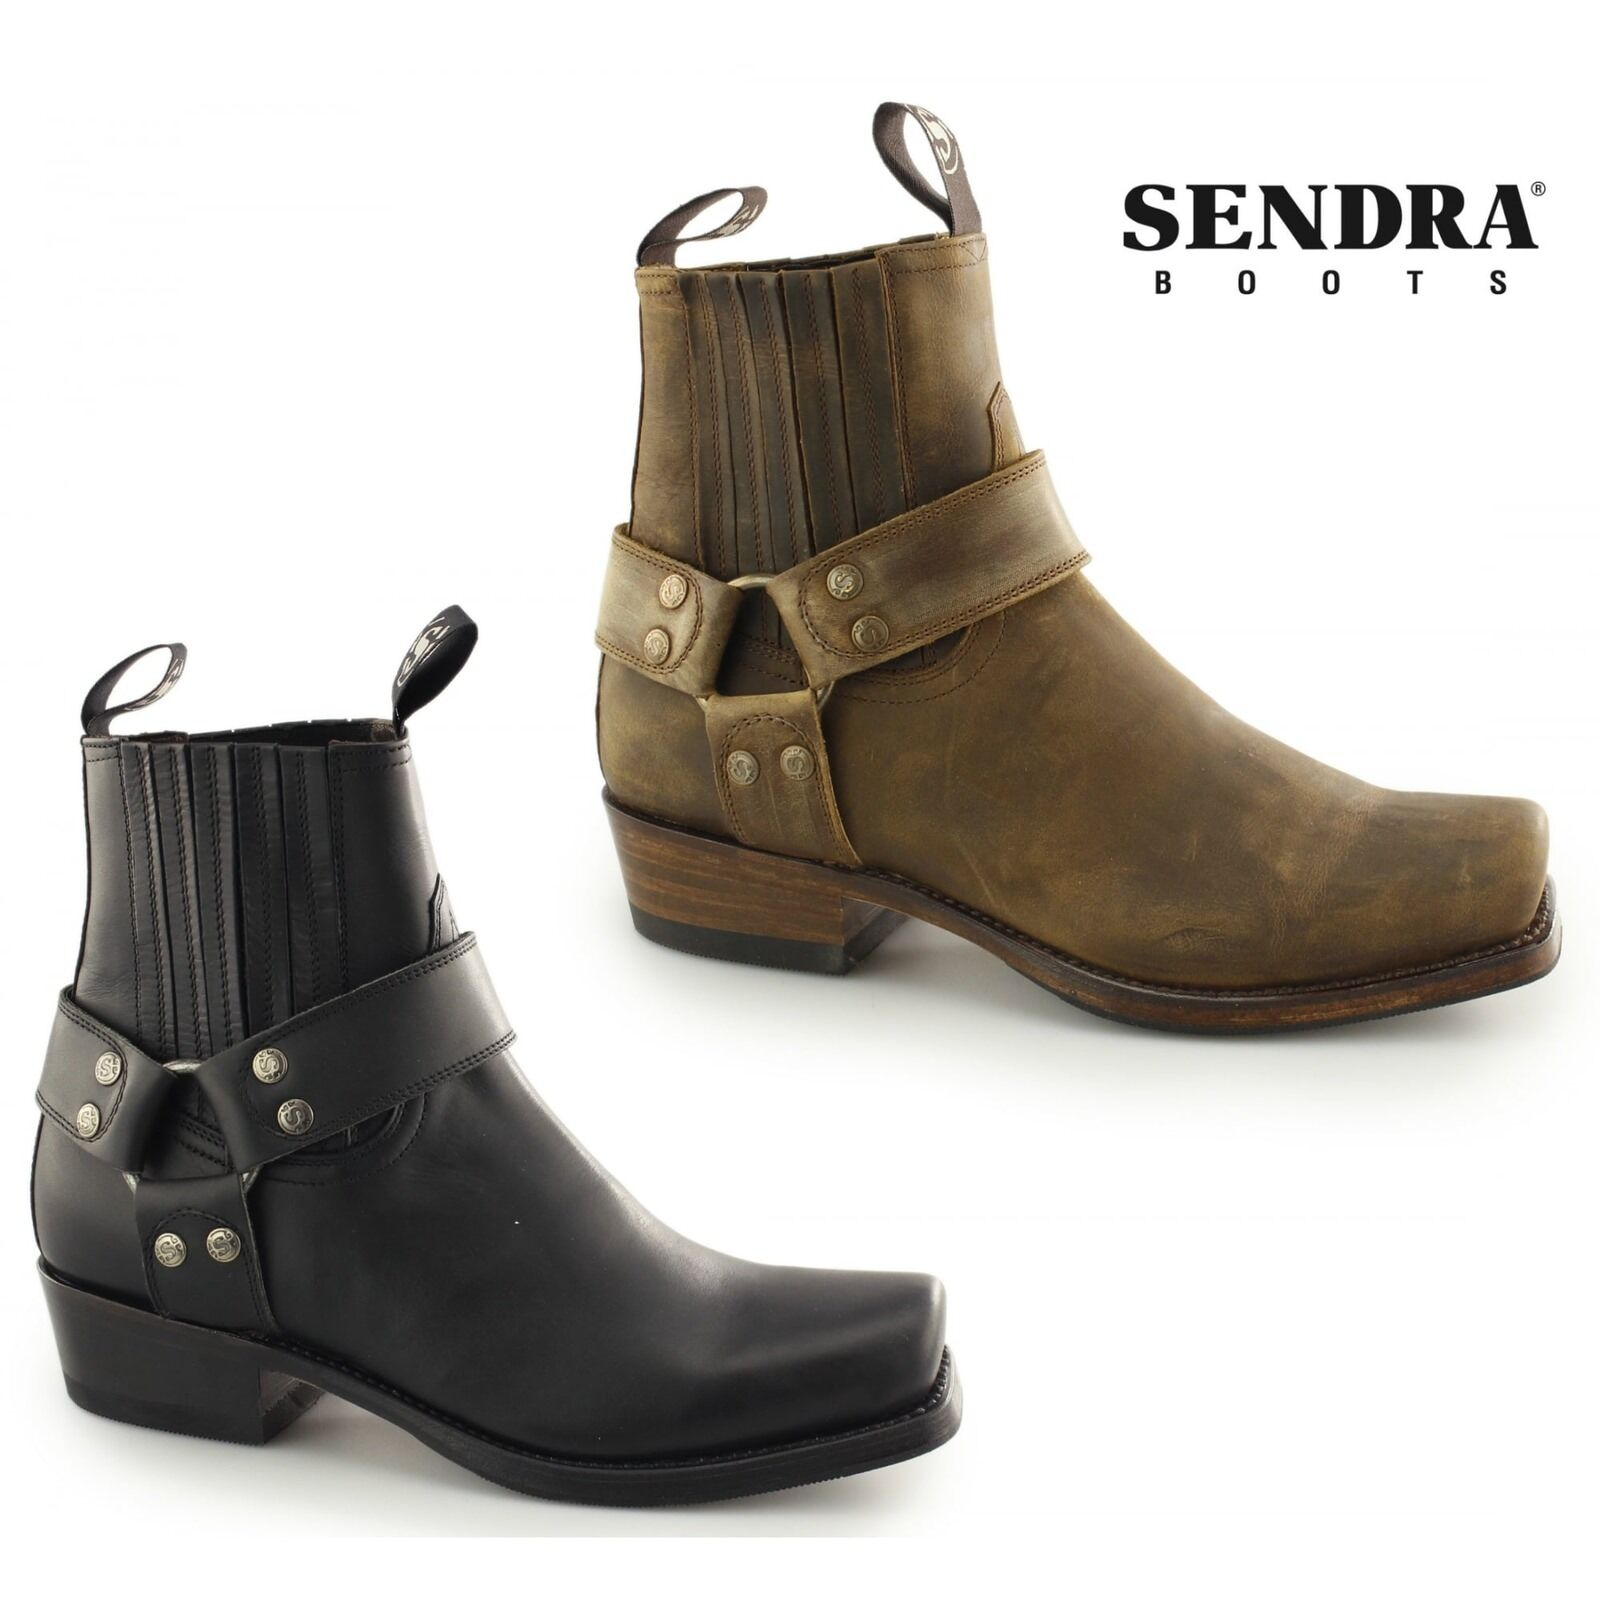 Sendra 8286 Mens Handmade Spanish Leather Pull On Harness Biker Motorcycle Boots